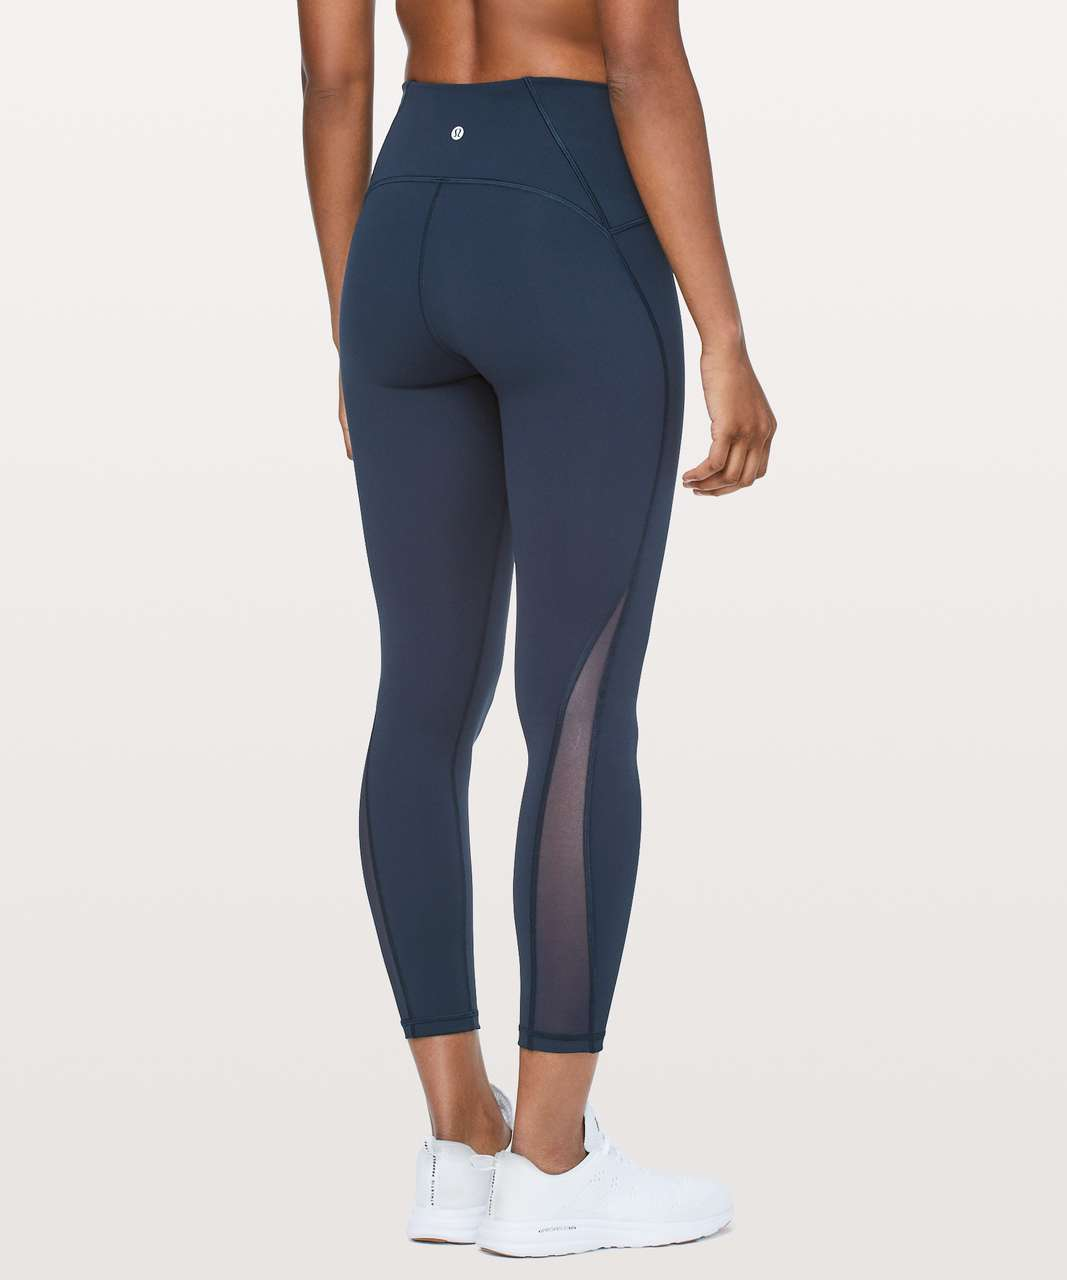 "Lululemon Train Times 7/8 Pant *25"" - True Navy"